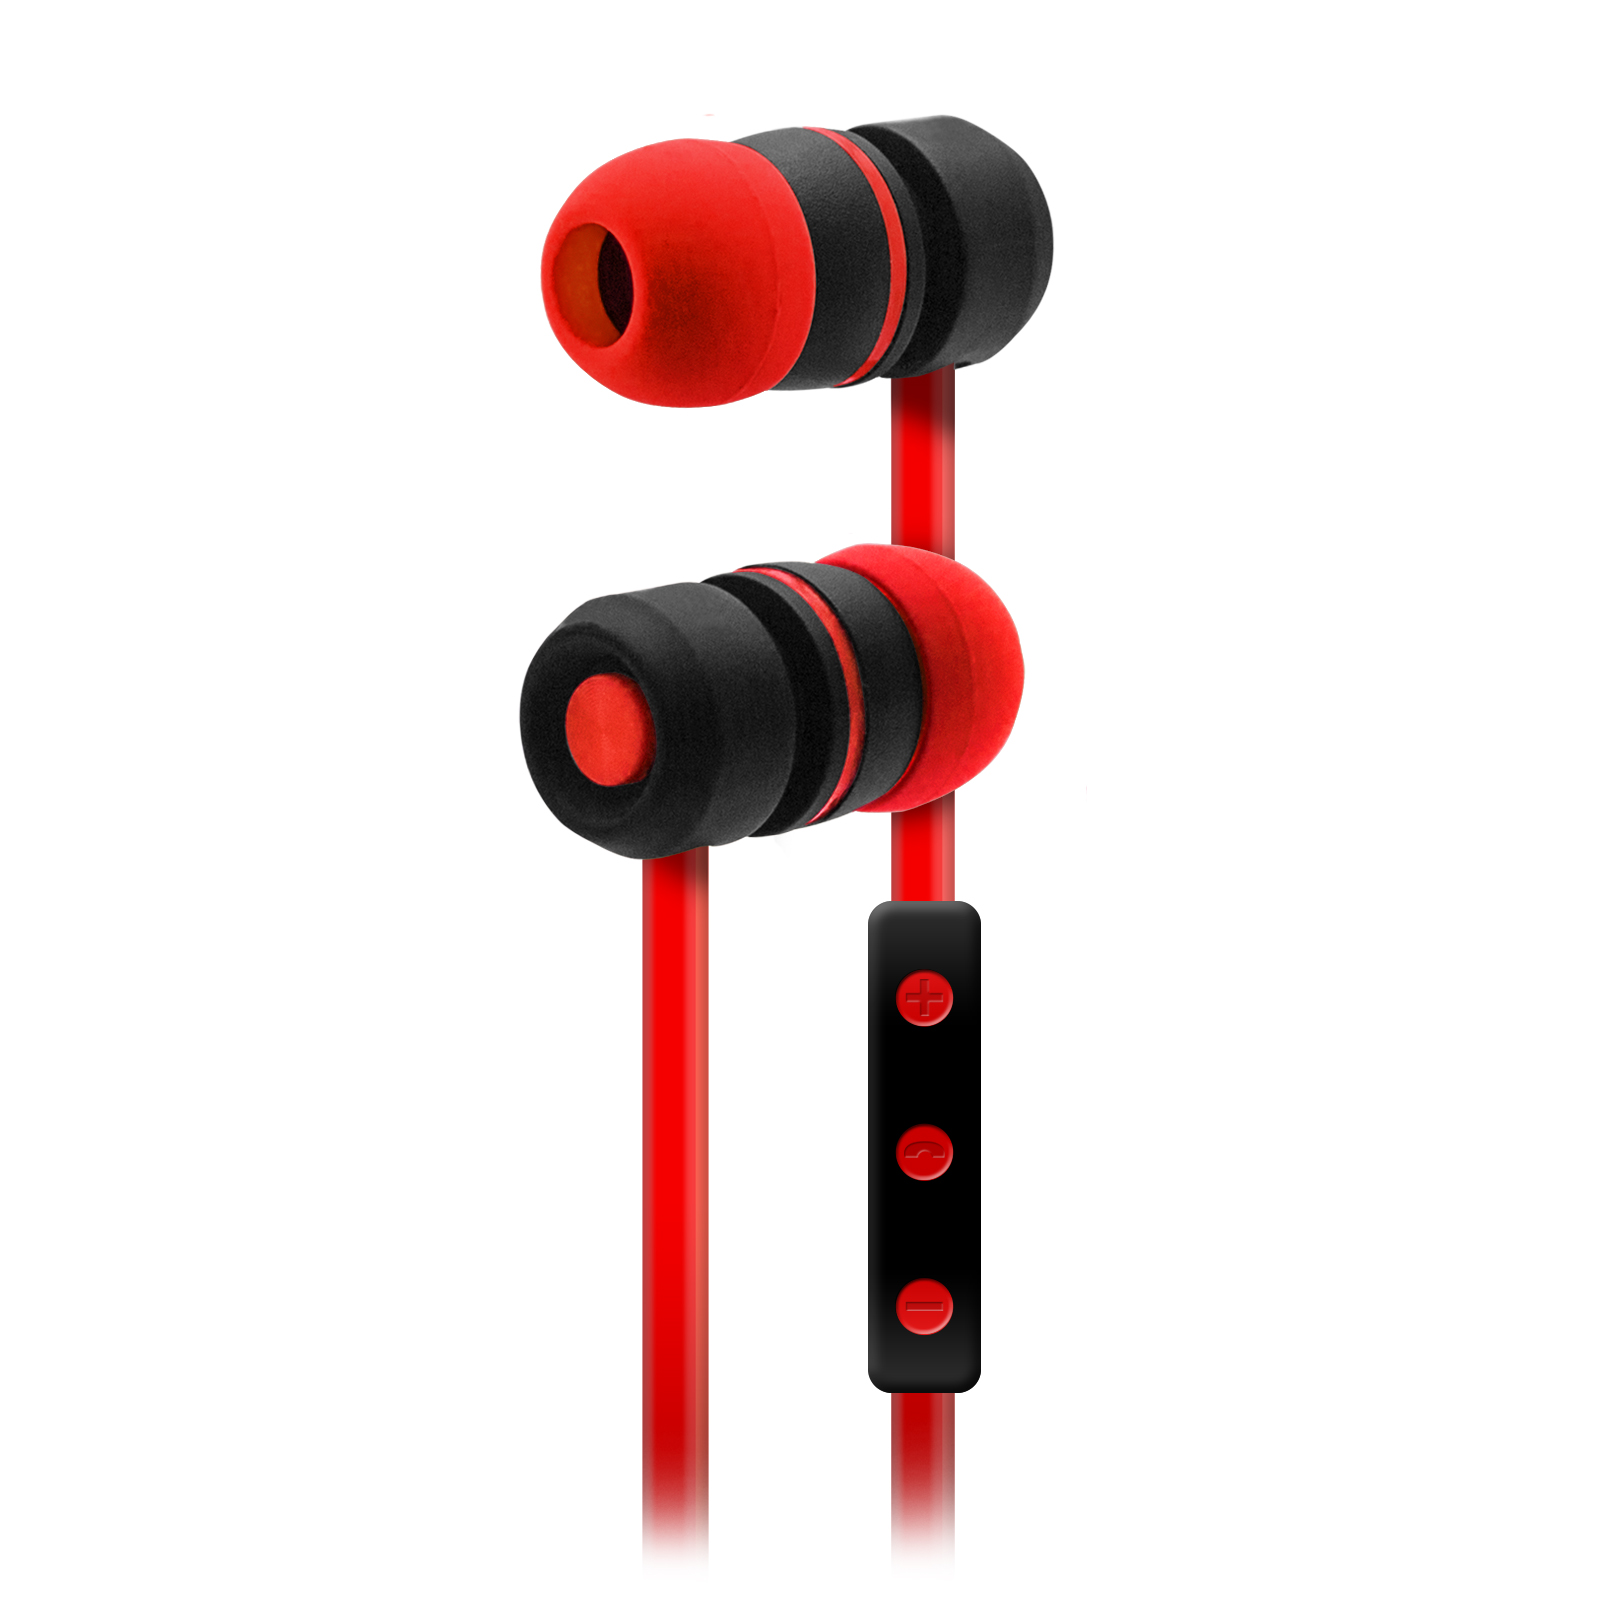 08a1826c1db Details about Sentry Bluetooth, Rechargeable, Ear Buds with Built In  Microphone, Red, BT150RD